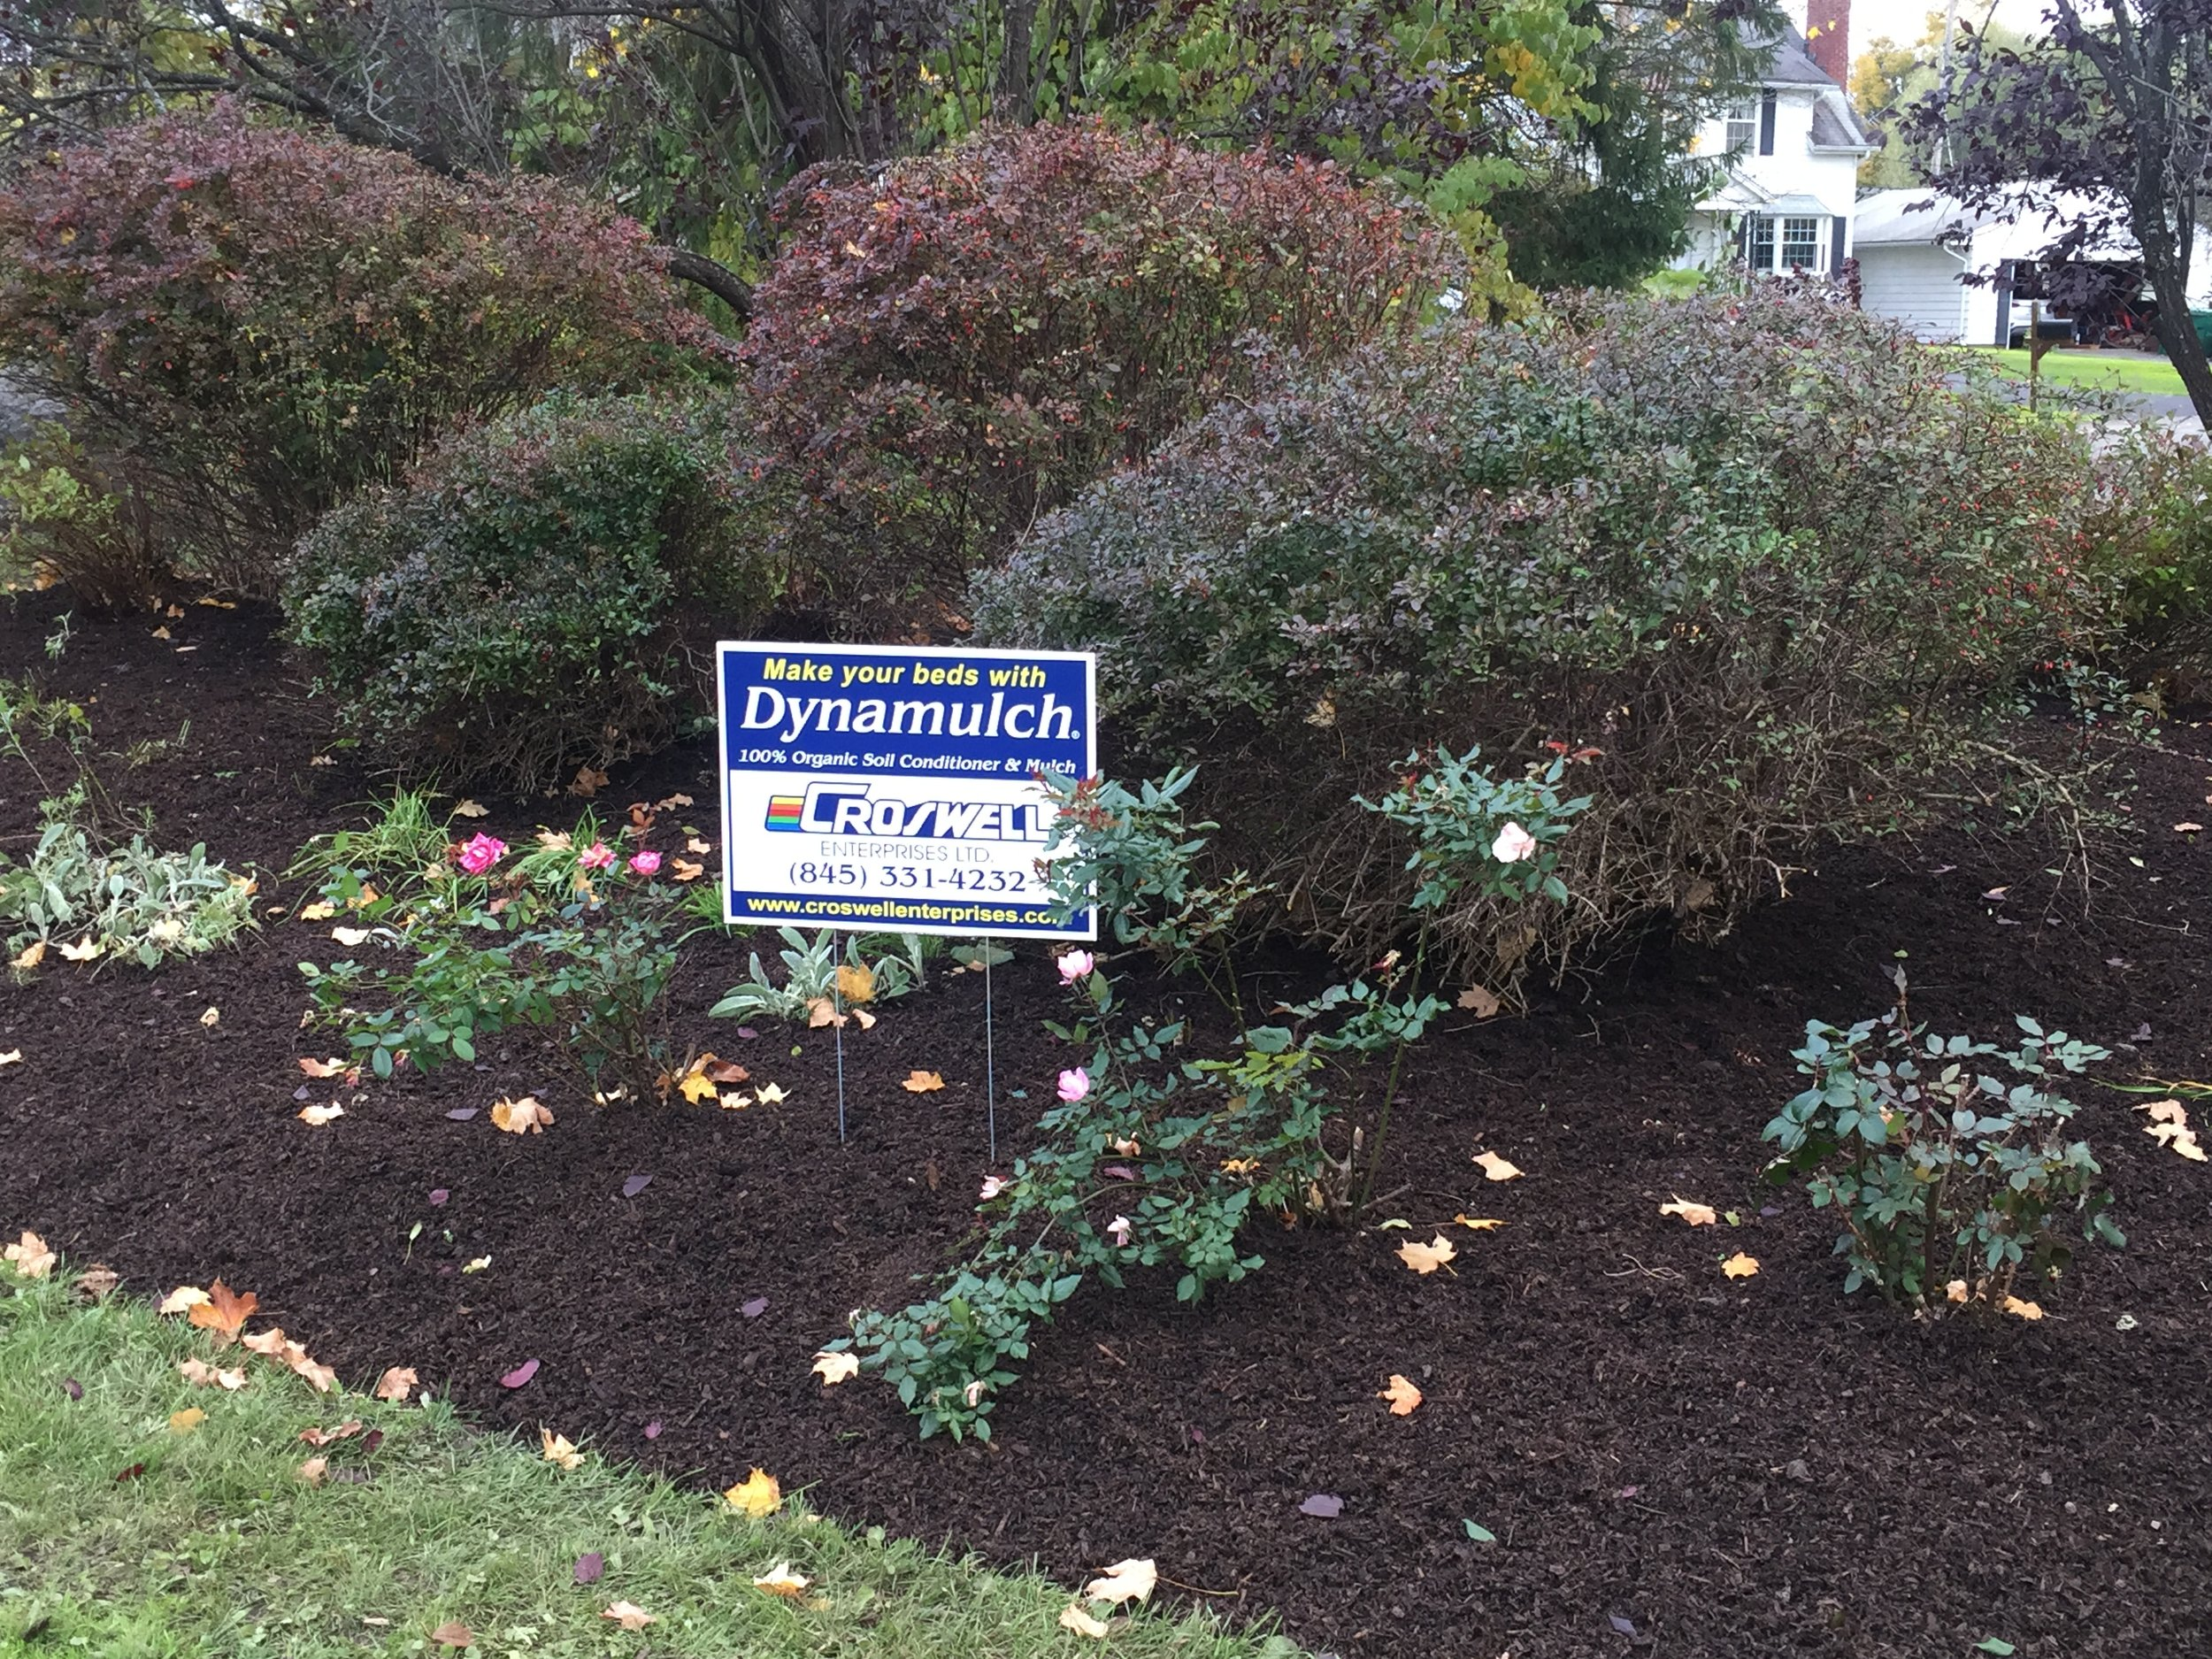 Ribbon Park, Town of HurleyFall 2018 - We donated 6 yards of Dynamulch to enhance the garden beds in front of Town Hall. We are proud to support the Hurley Heritage Society in this endeavor.